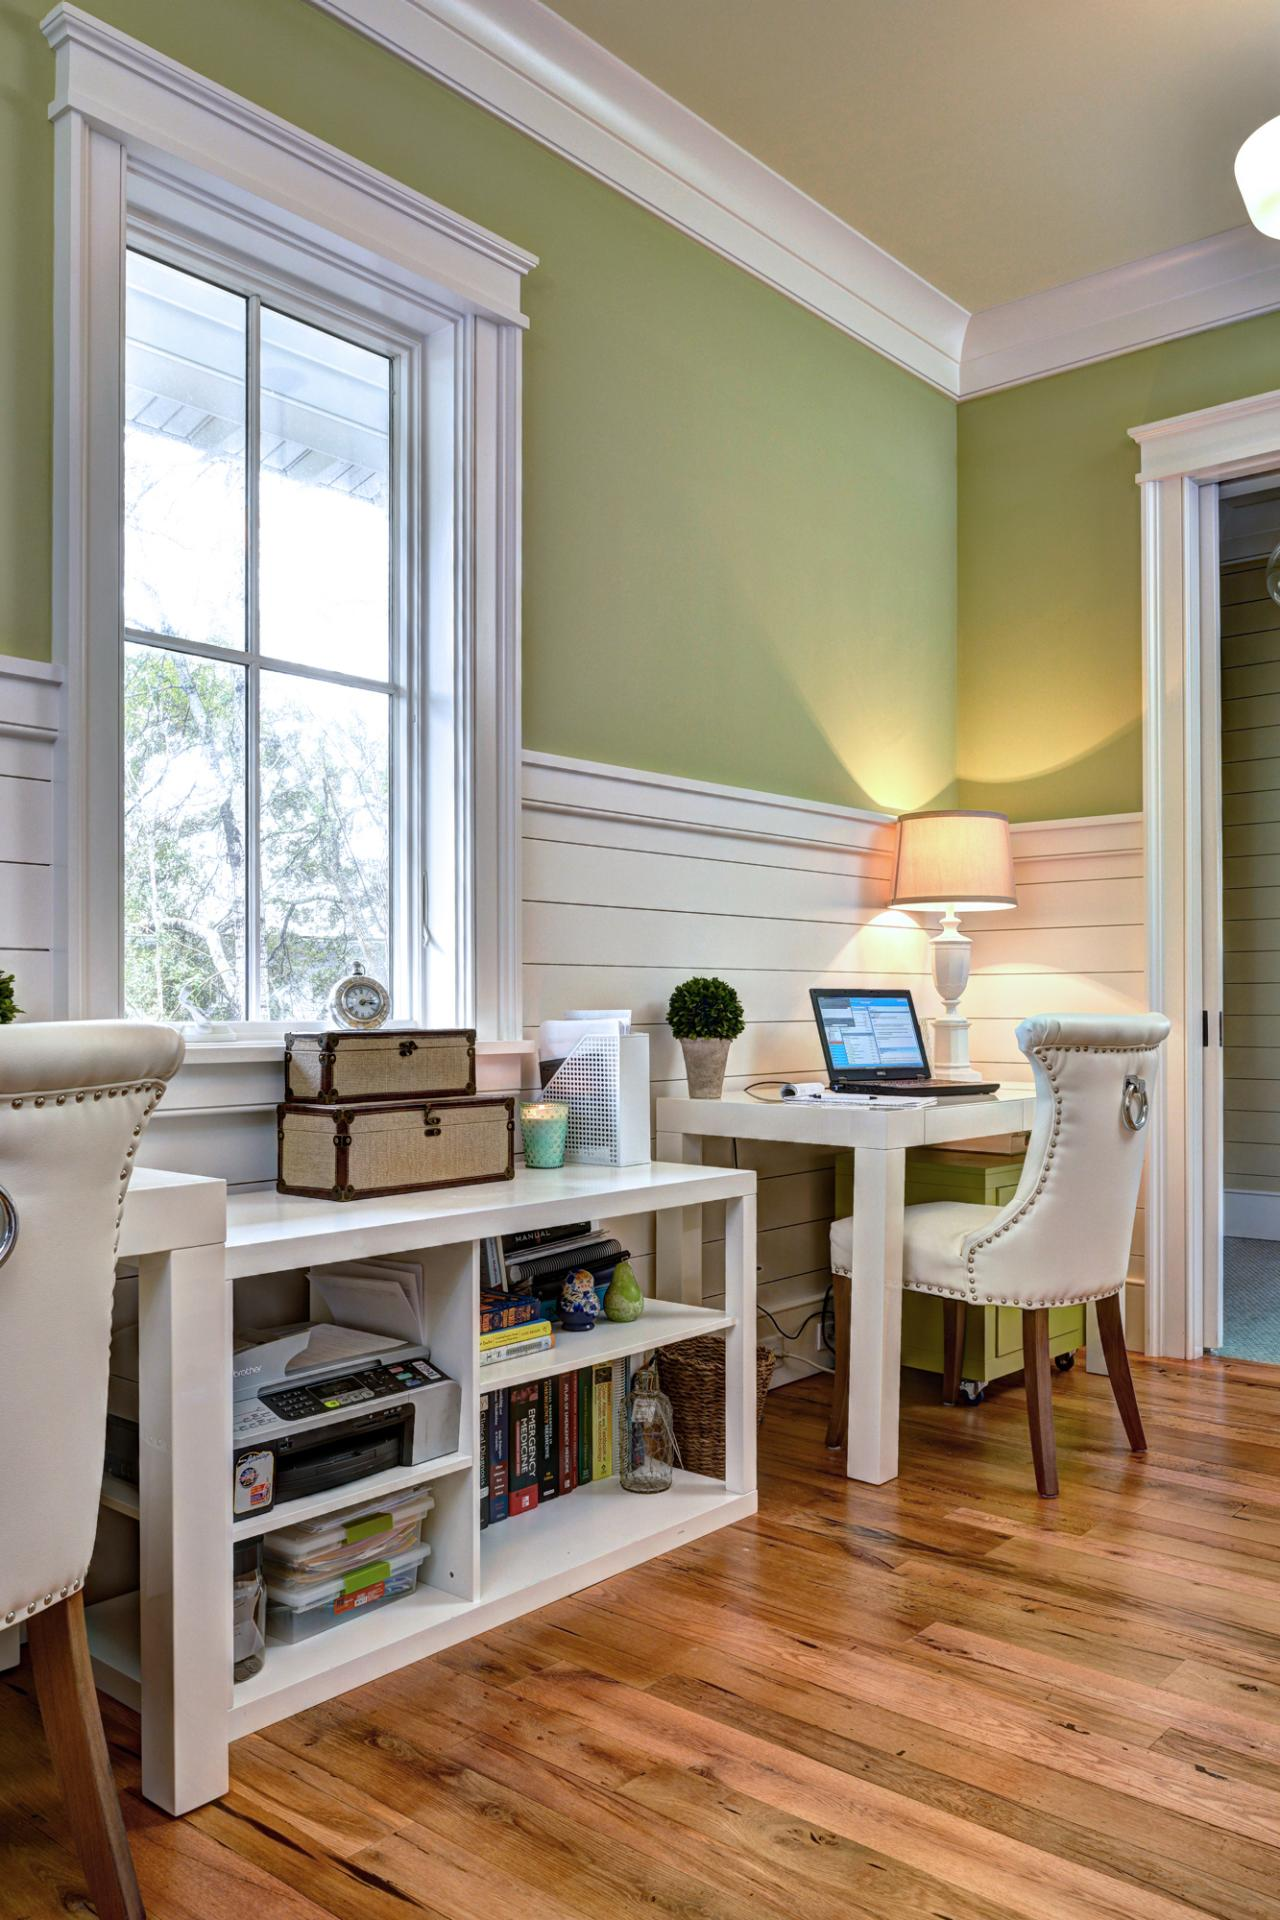 Home Office with Green Walls and Costal-style Wainscoting